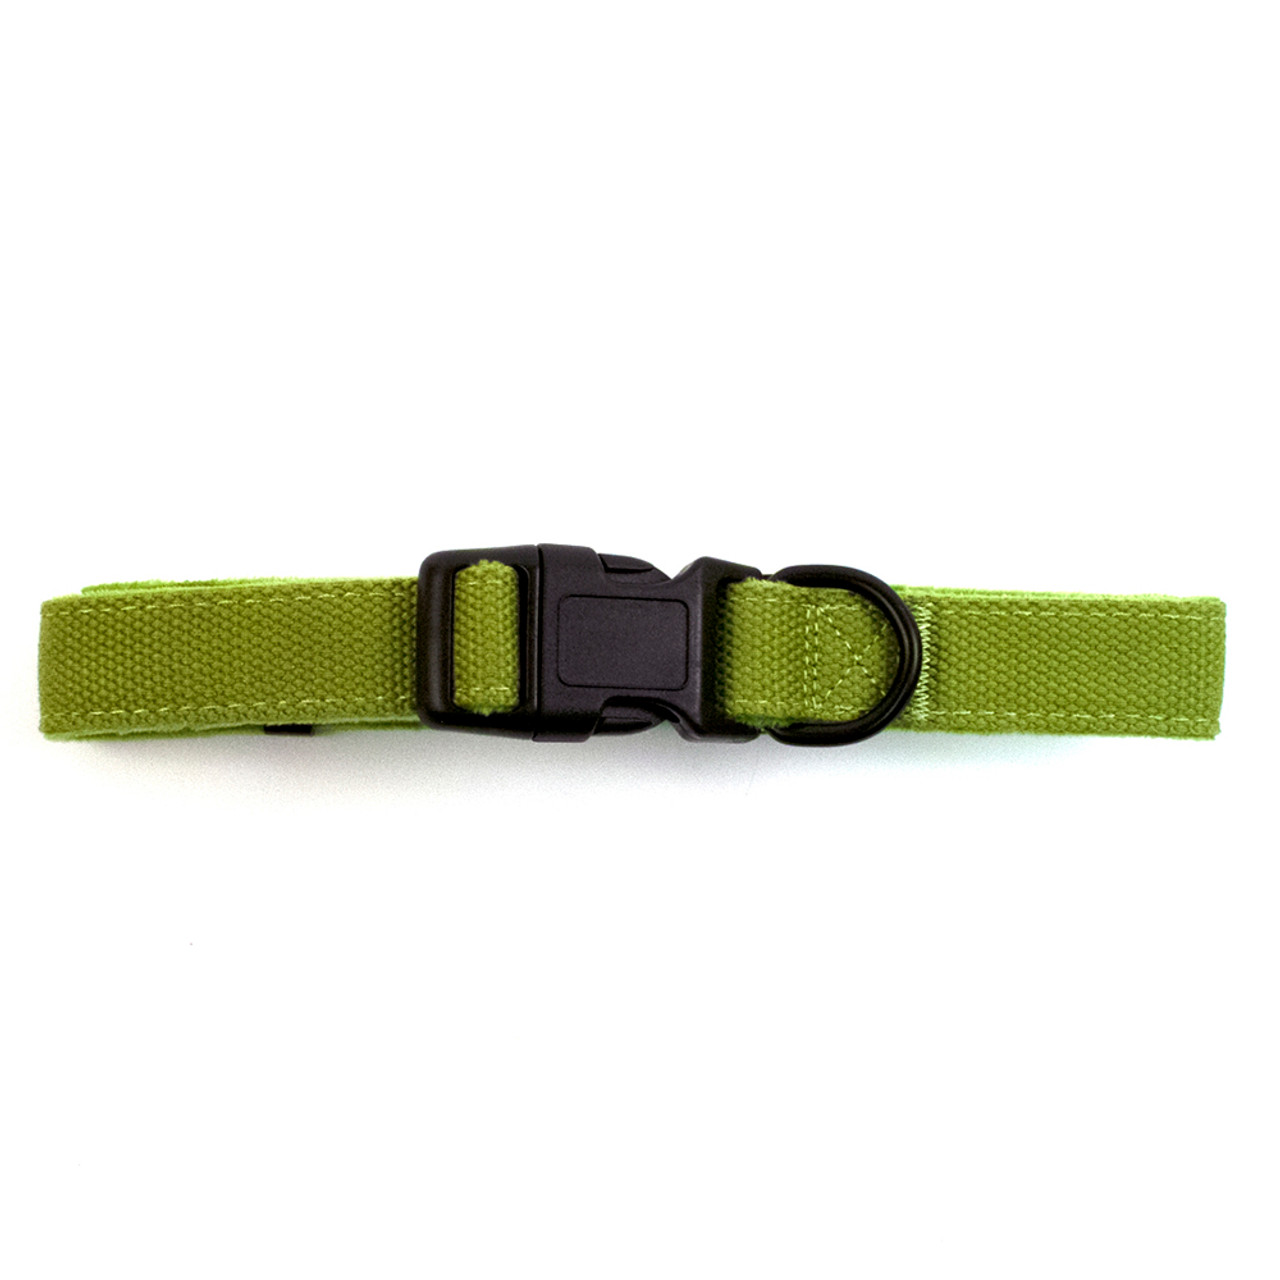 Fetch Your Own Adventure Eco-Friendly Woven Dog Collar